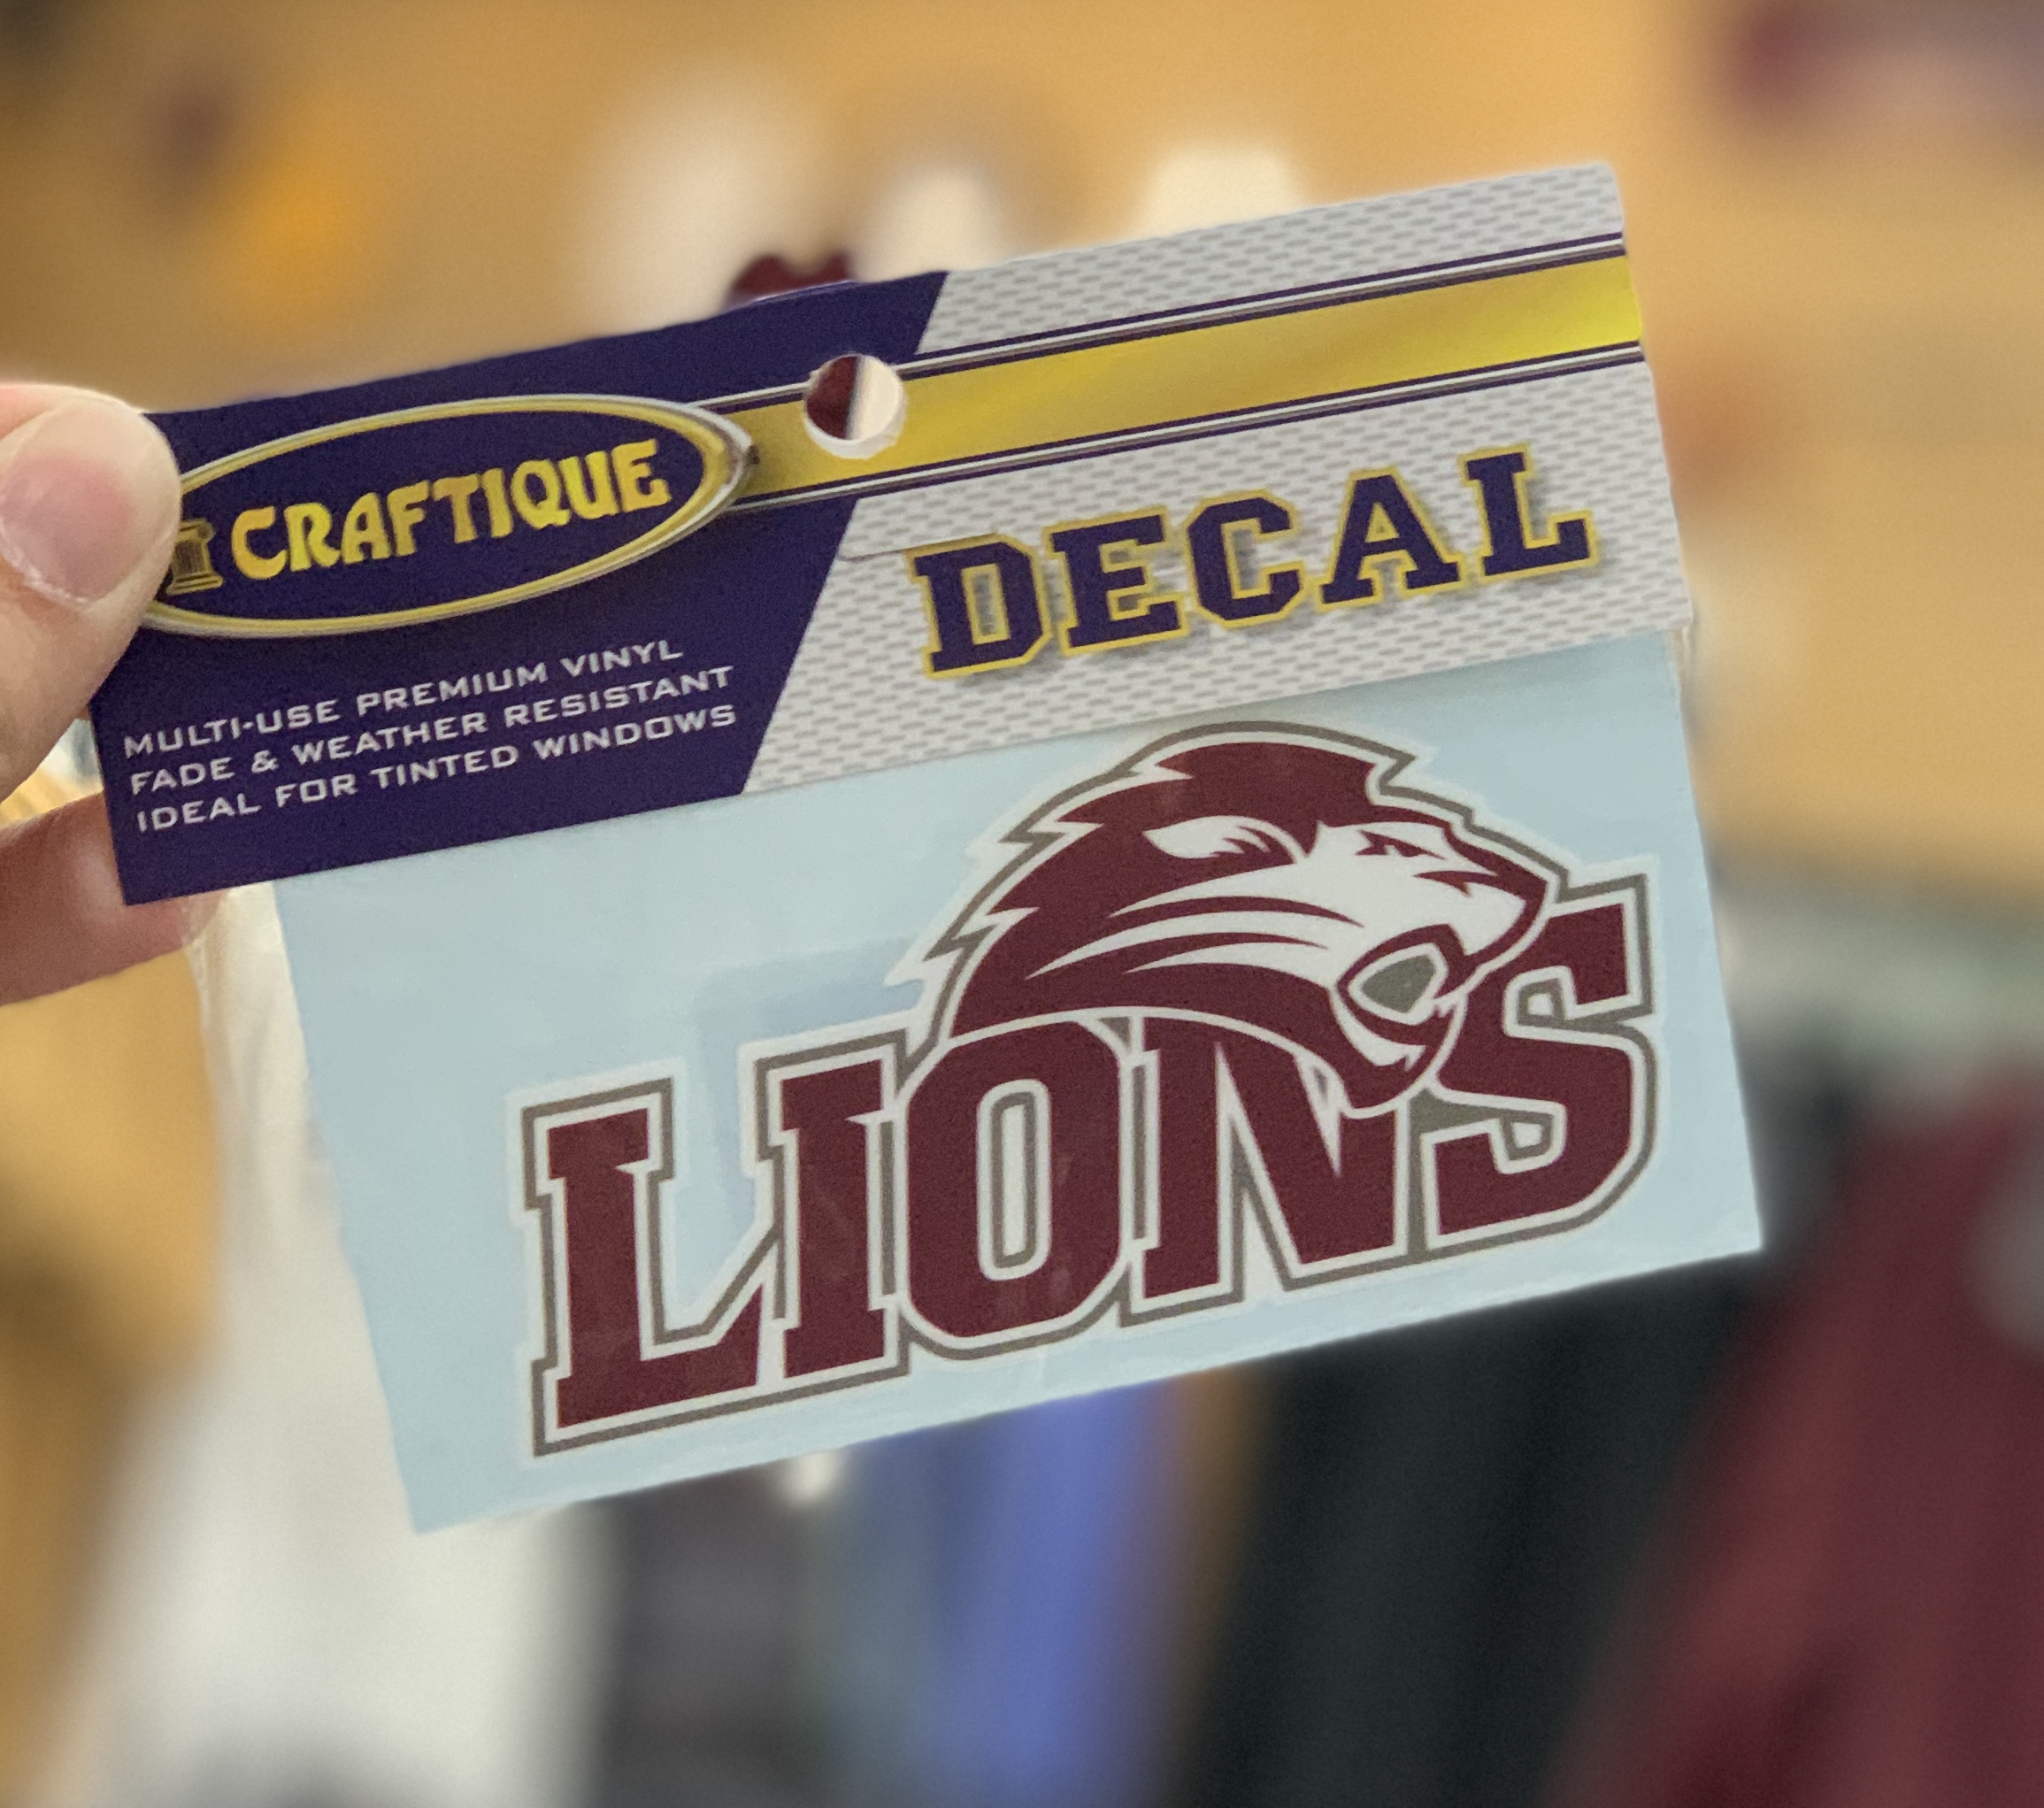 FHU Lions Decal